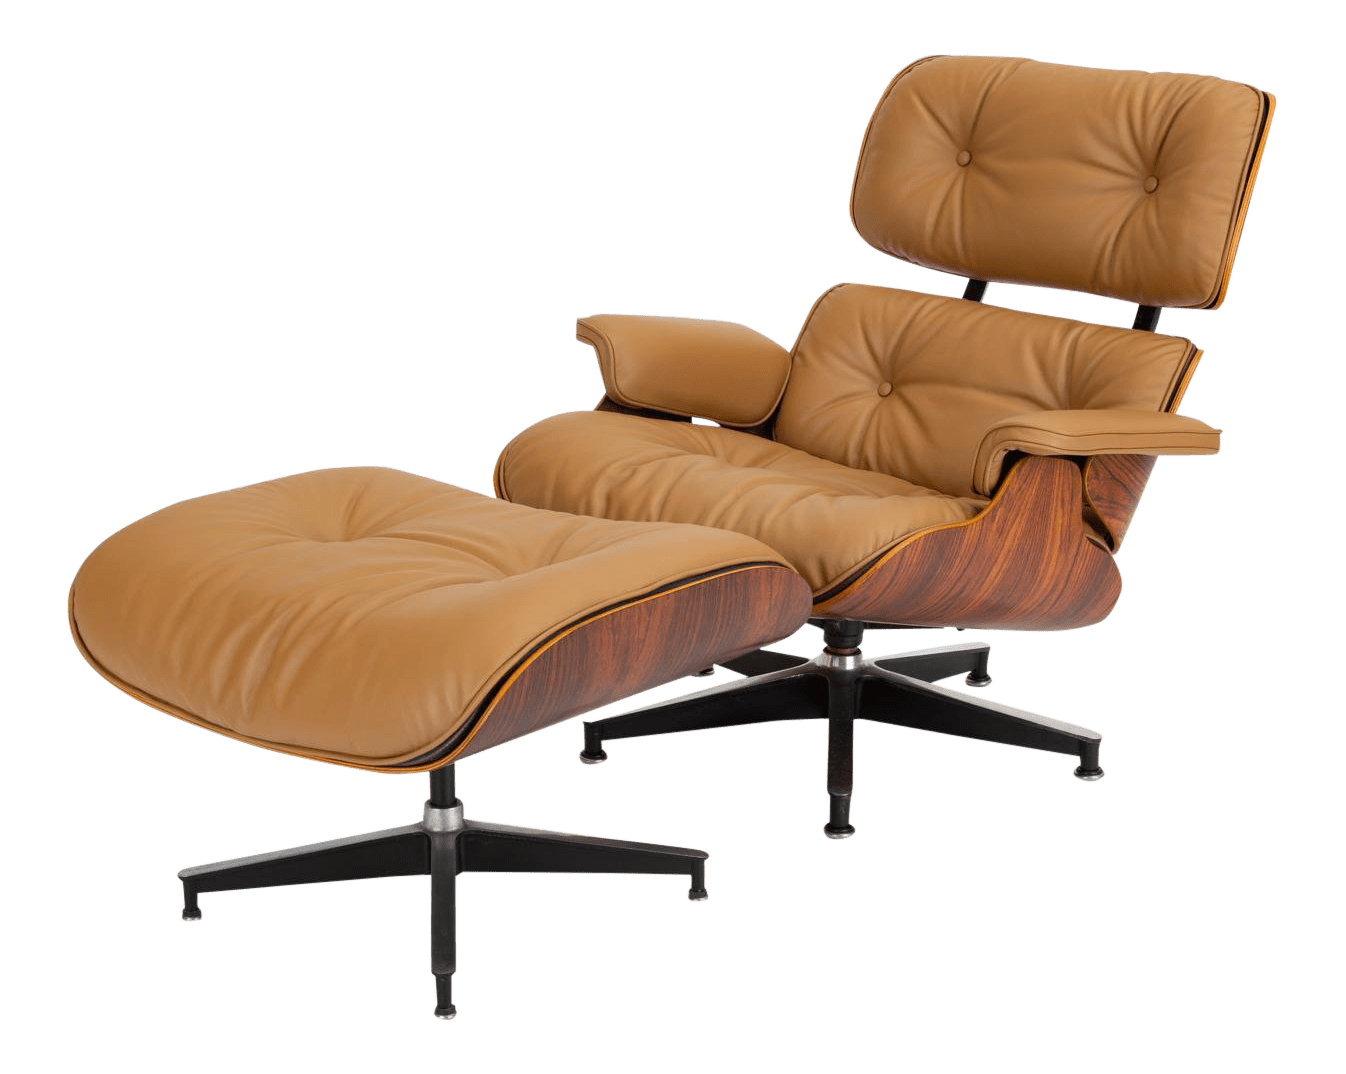 Ray And Charles Eames Ray Charles Eames For Herman Miller Third Generation Lounge Chair With Ottoman